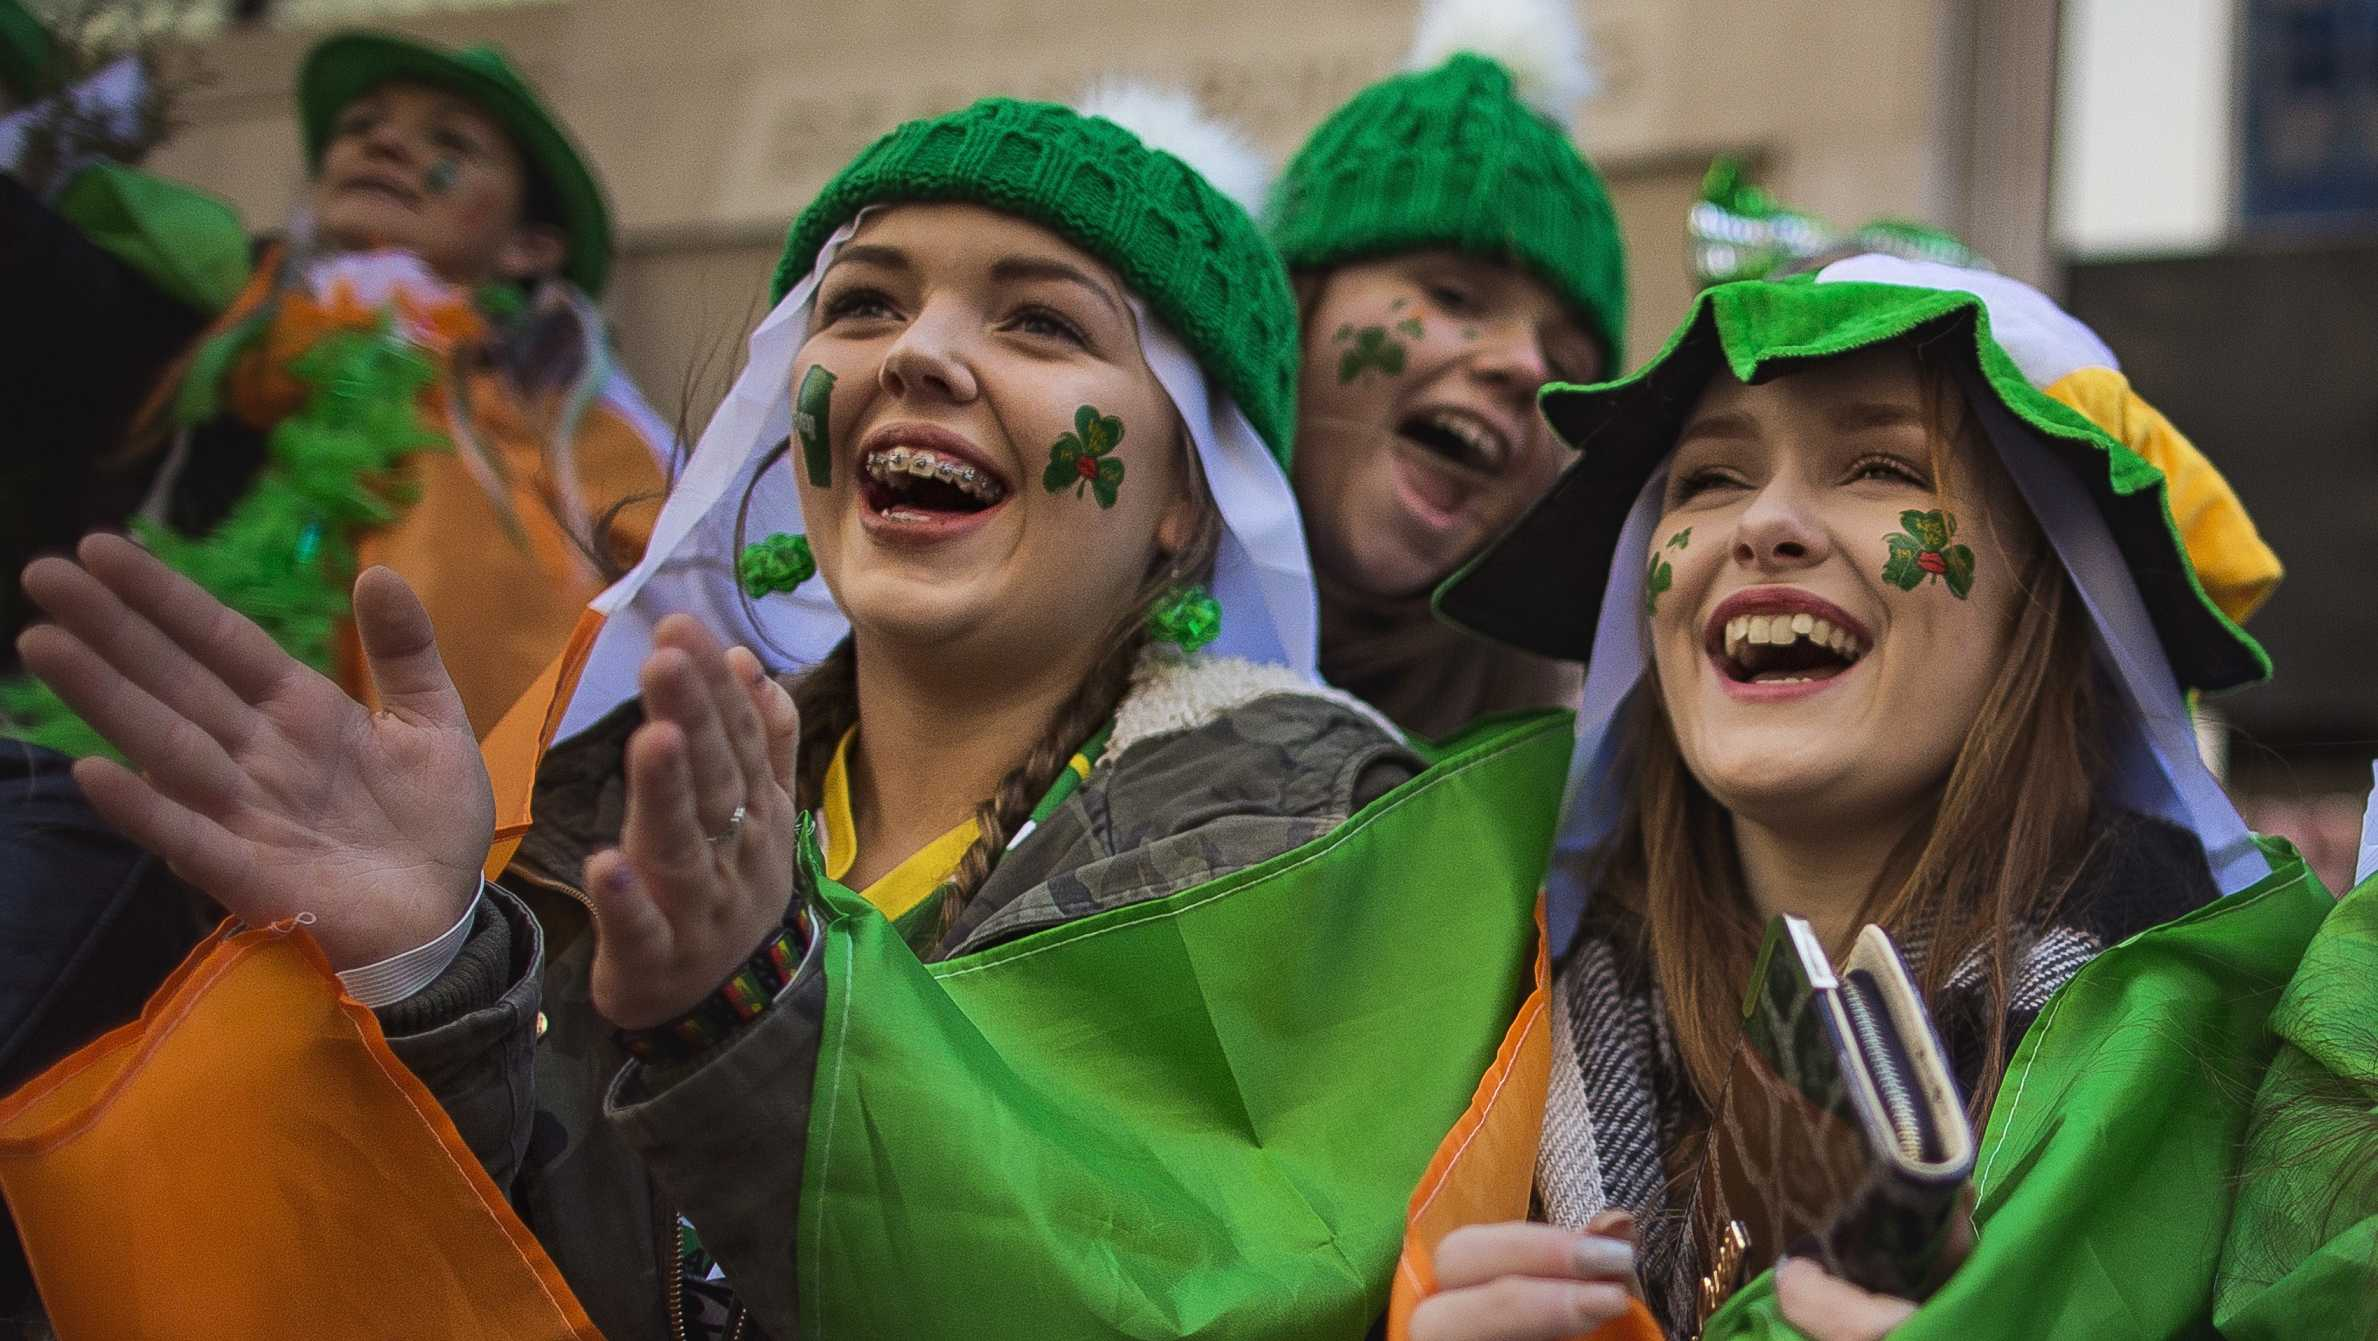 Spectators watch as revelers march up Fifth Avenue during last year'sSt. Patrick's Day Parade in New York City.